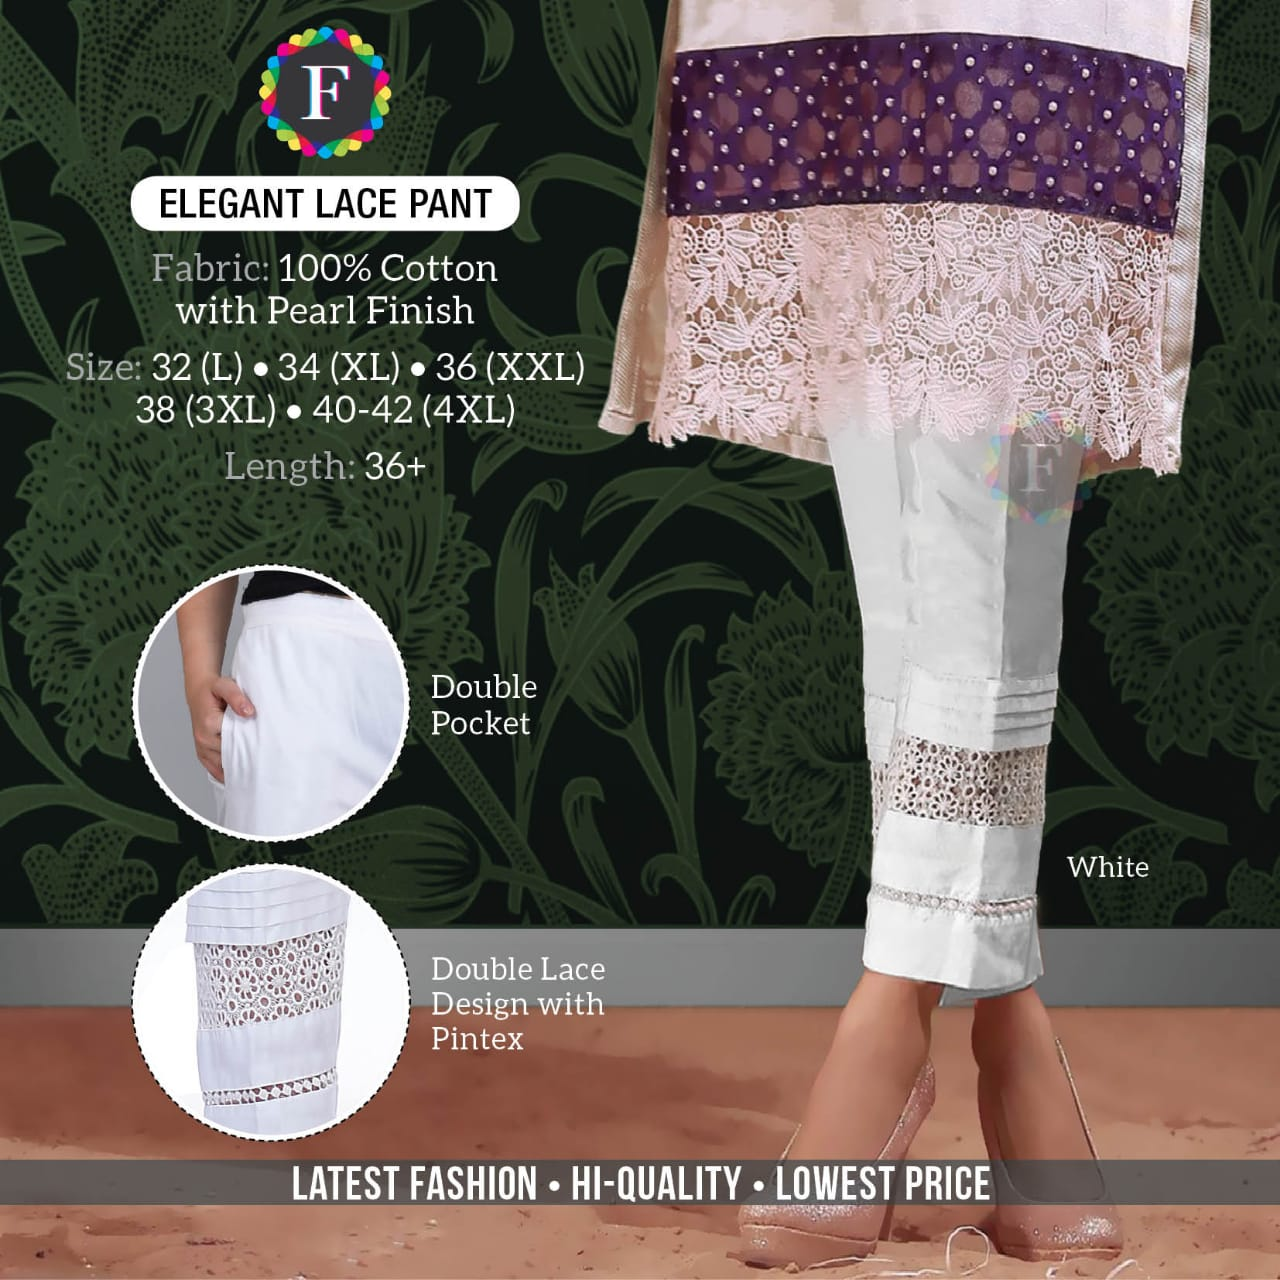 Elegant Lace Pant Fancy Bottom Wear Cotton Pants Collection At Lowest Cost